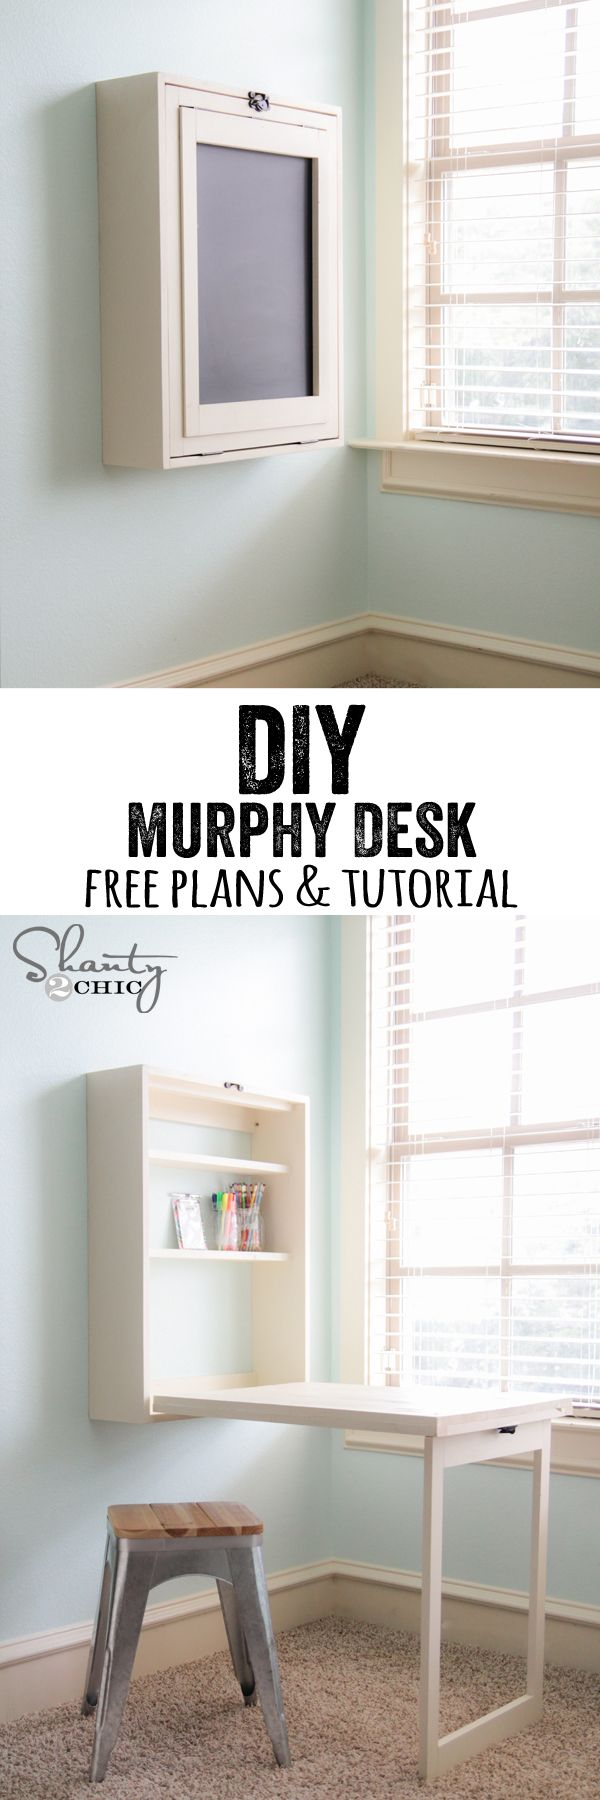 Free And Easy DIY Desk. Itu0027s A Great Desk Looks So Stylish And Itu0027s Cheap